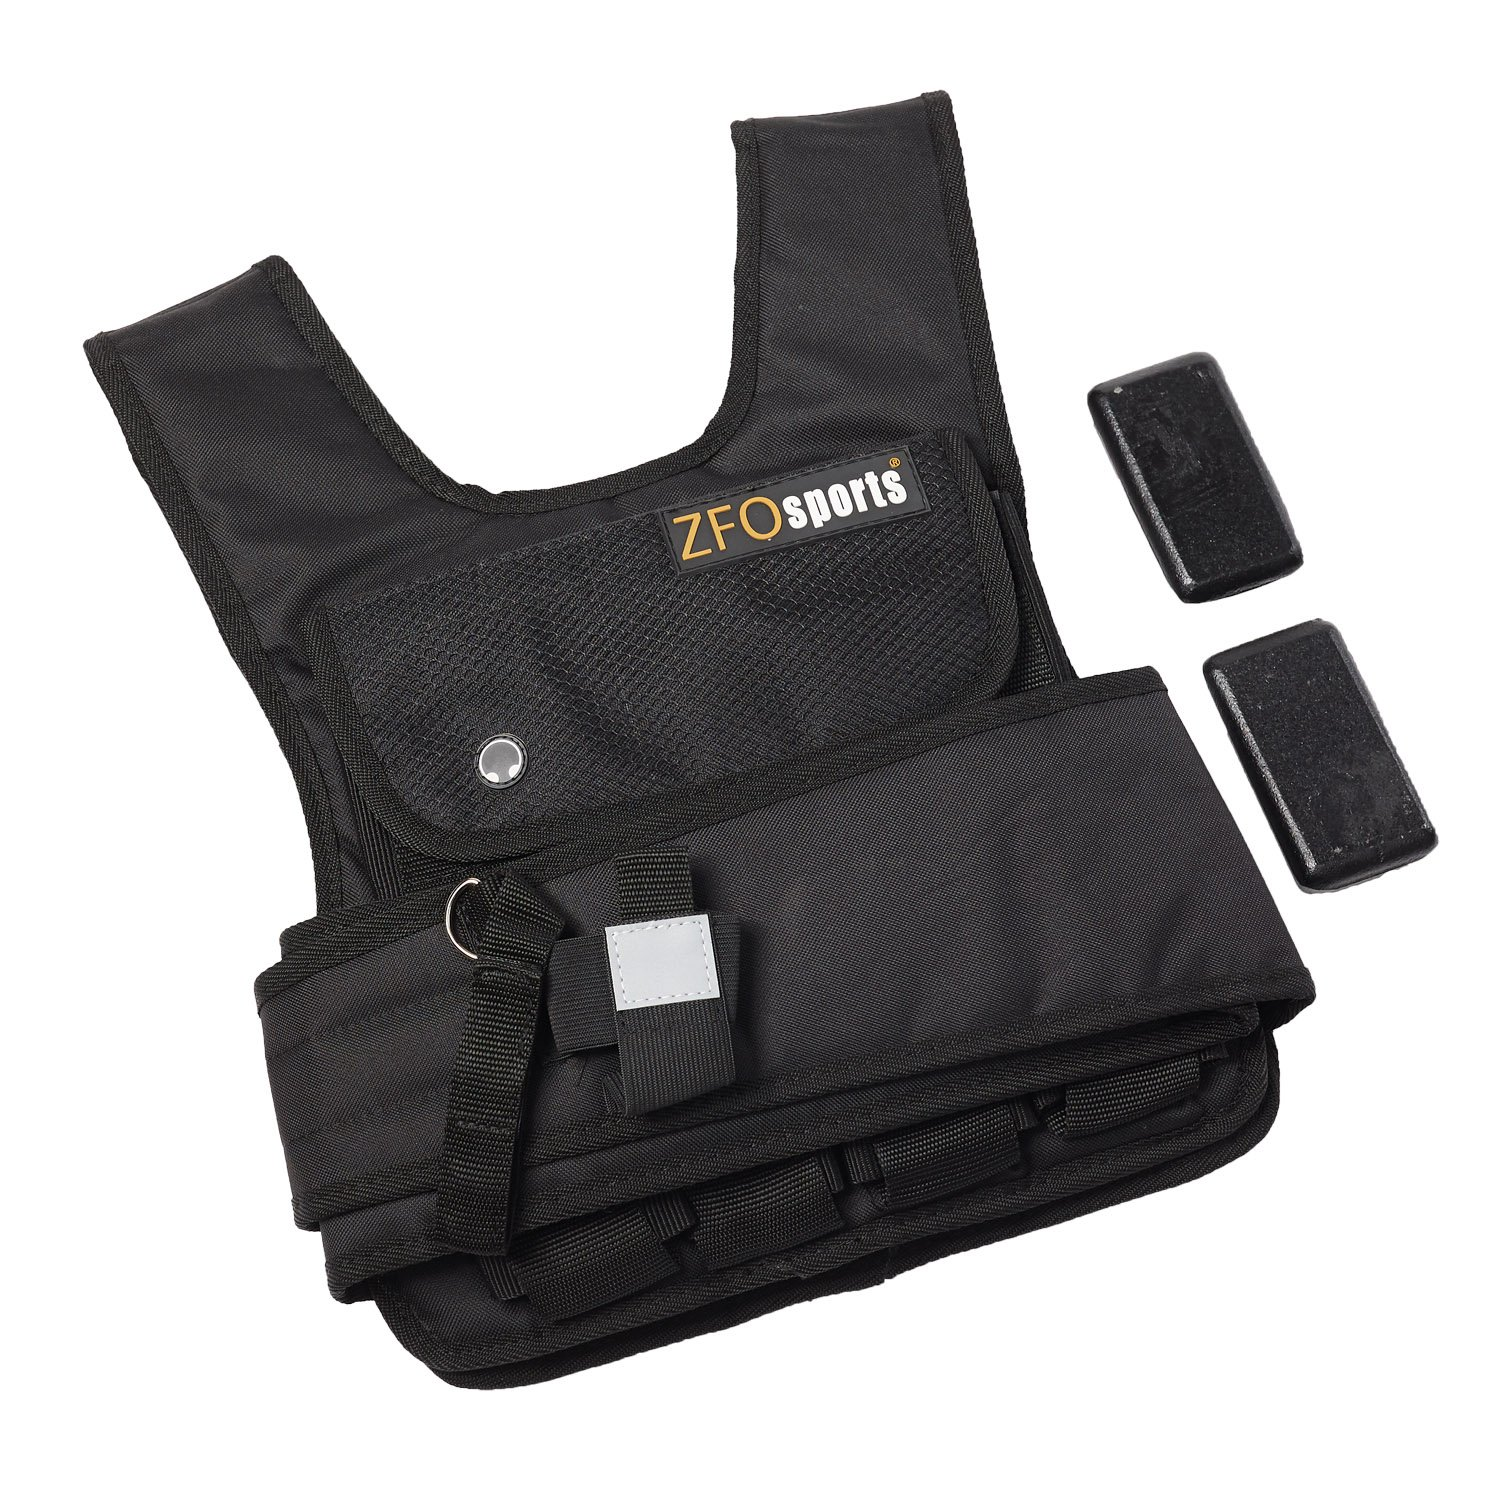 ZFOsports 50lbs SHORT Adjustable Weighted Vest with IRON WEIGHTS, PHONE POCKET, AND WATER BOTTLE HOLDER by ZFOsports